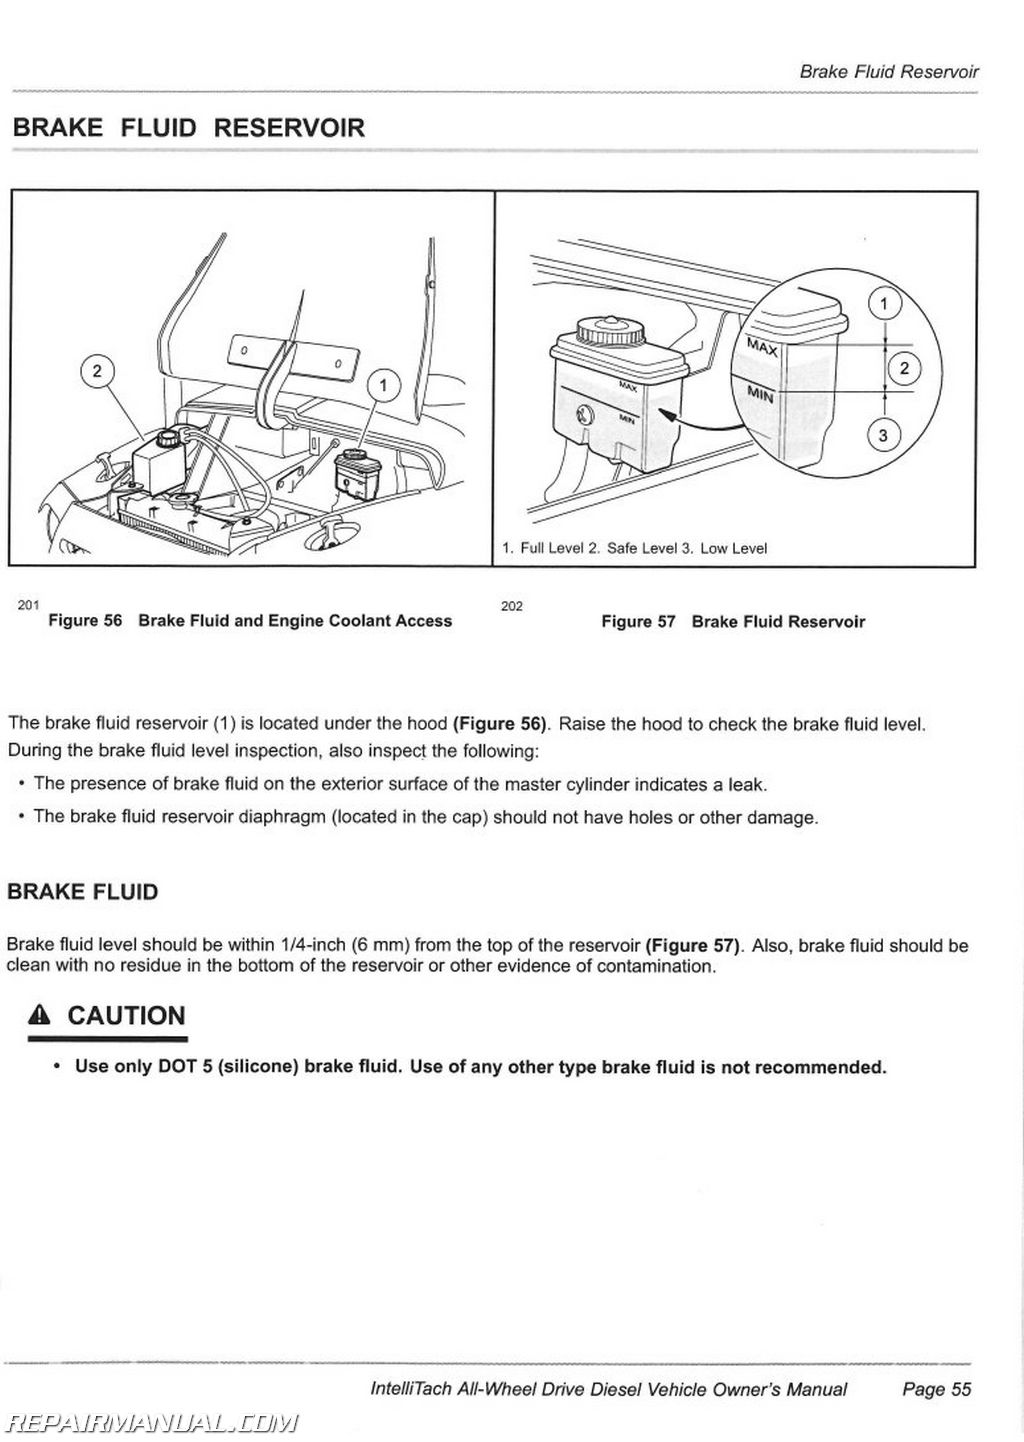 hight resolution of club car carryall 295 intellitach xrt 1550 intellitach diesel vehicle owners manual